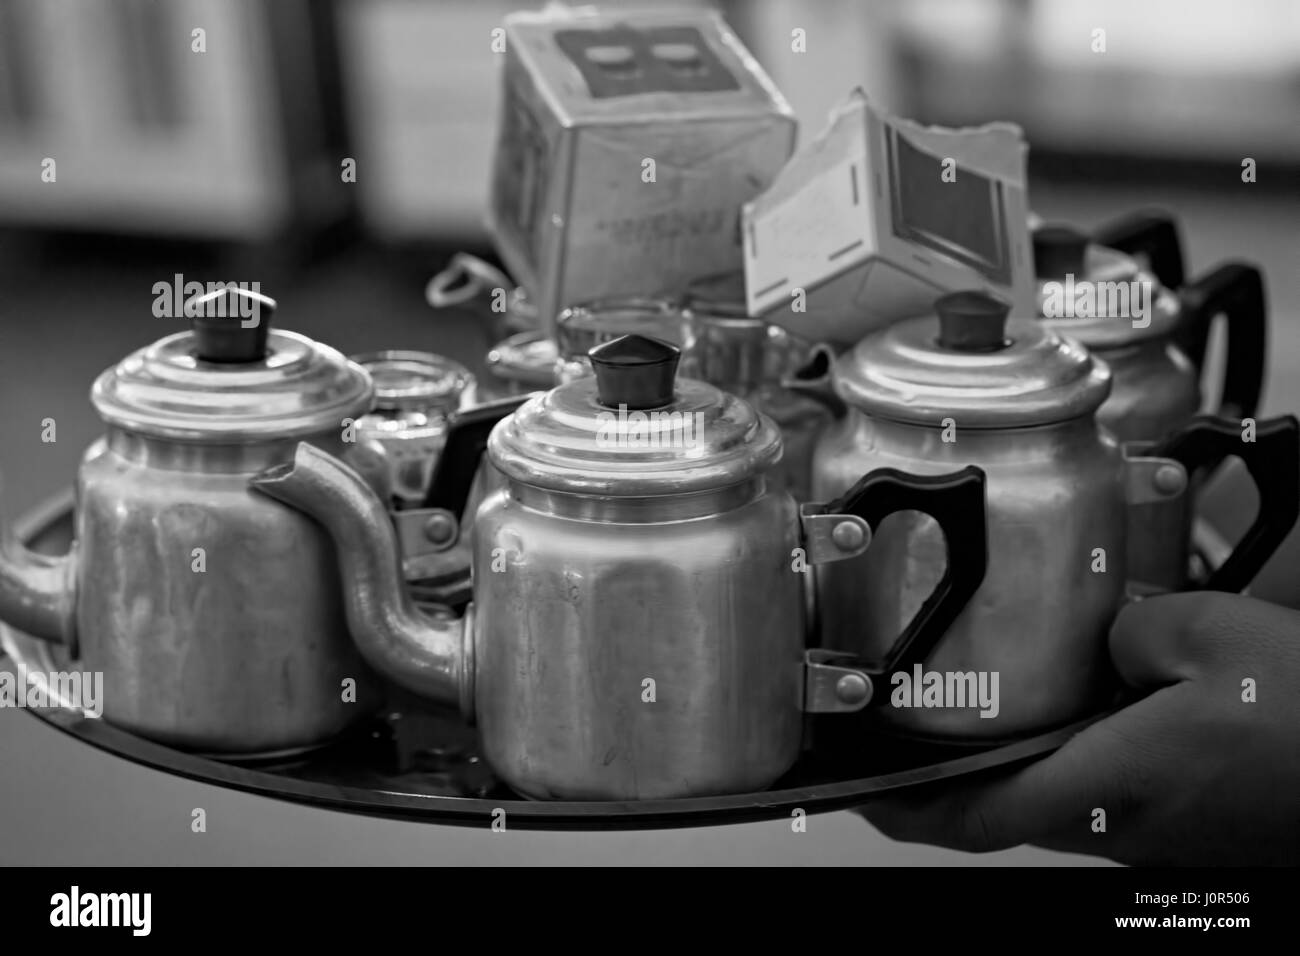 Tray with kettles and tea carried by Moroccan boy - Stock Image